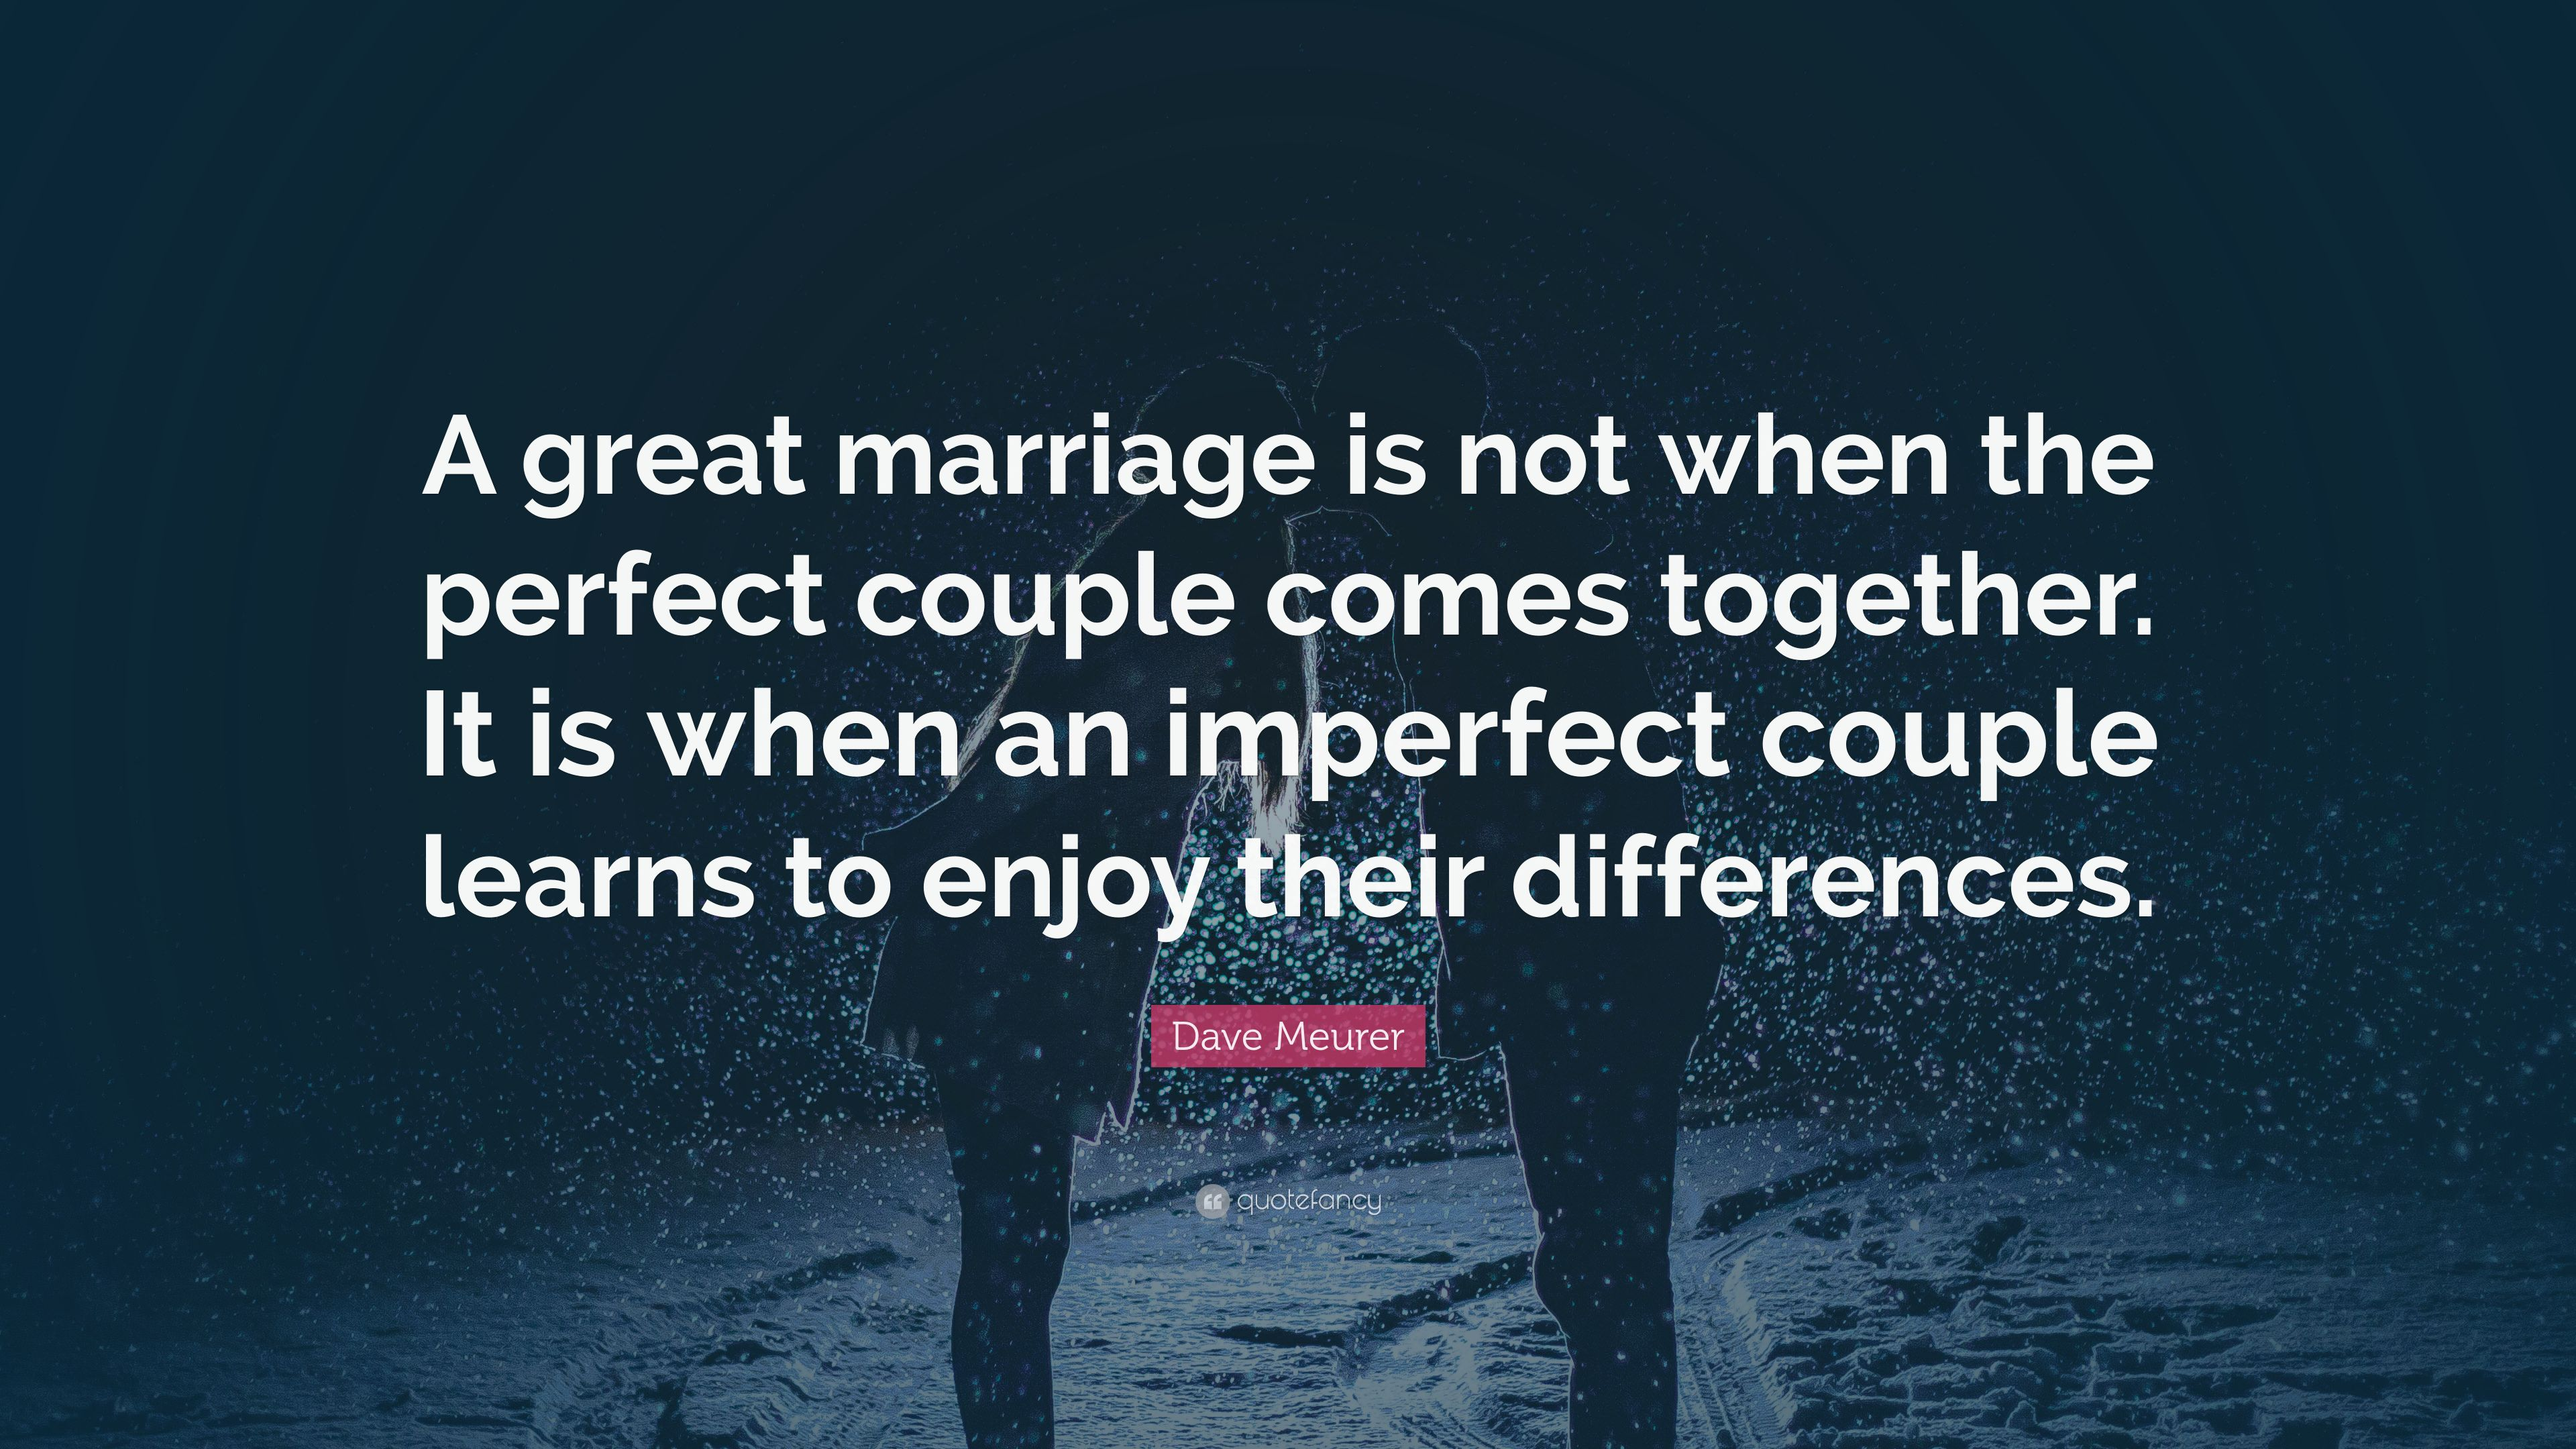 3840x2160 Marriage Quotes (59 wallpapers) - Quotefancy